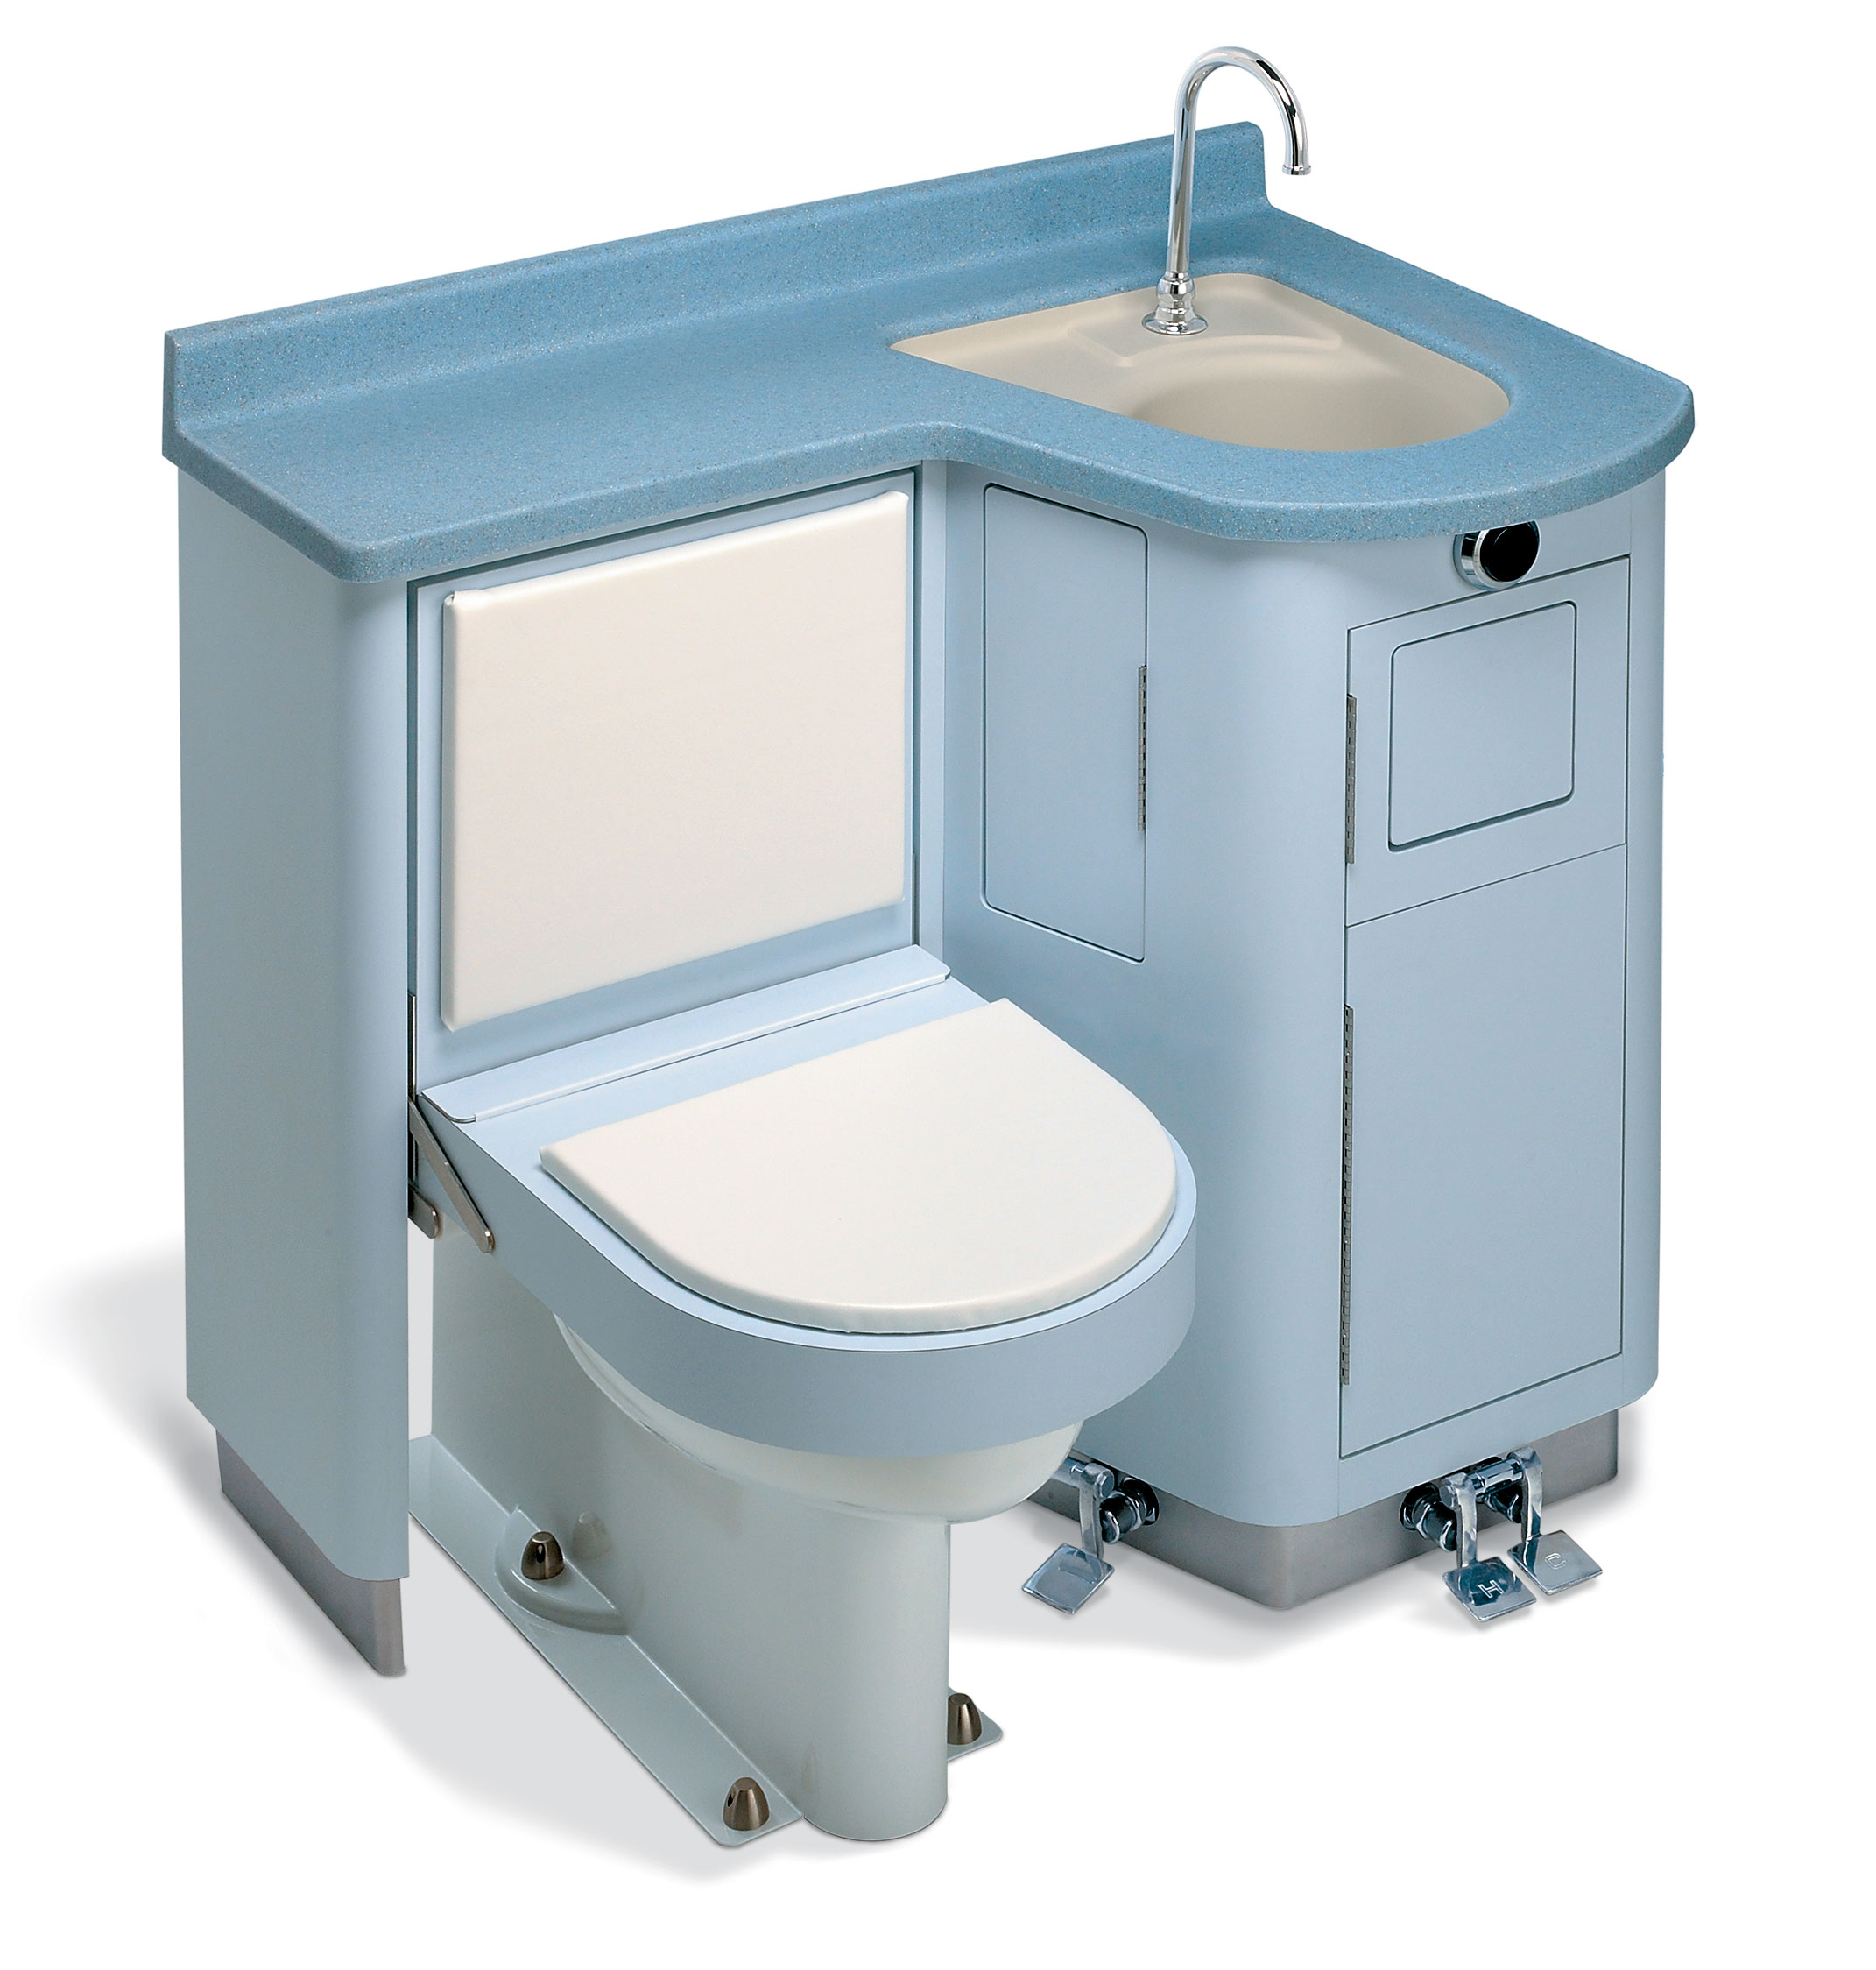 Lavatory, Fixed Water Closet, Bed Pan Washer Comby - Bradley ...